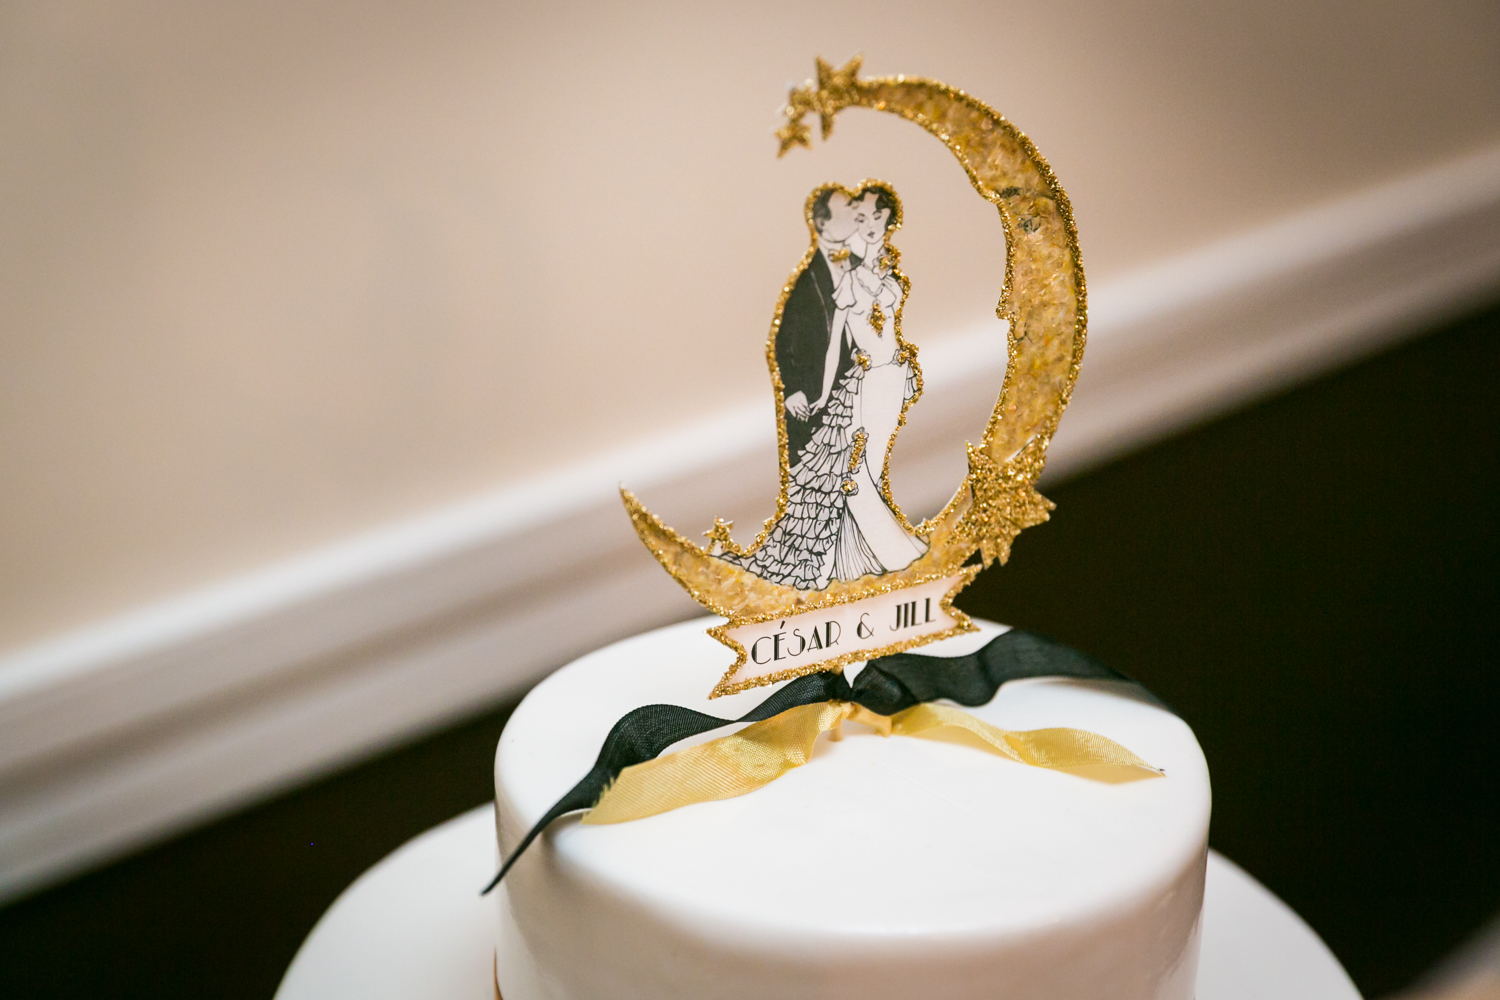 1920s theme wedding cake topper with moon and bride and groom